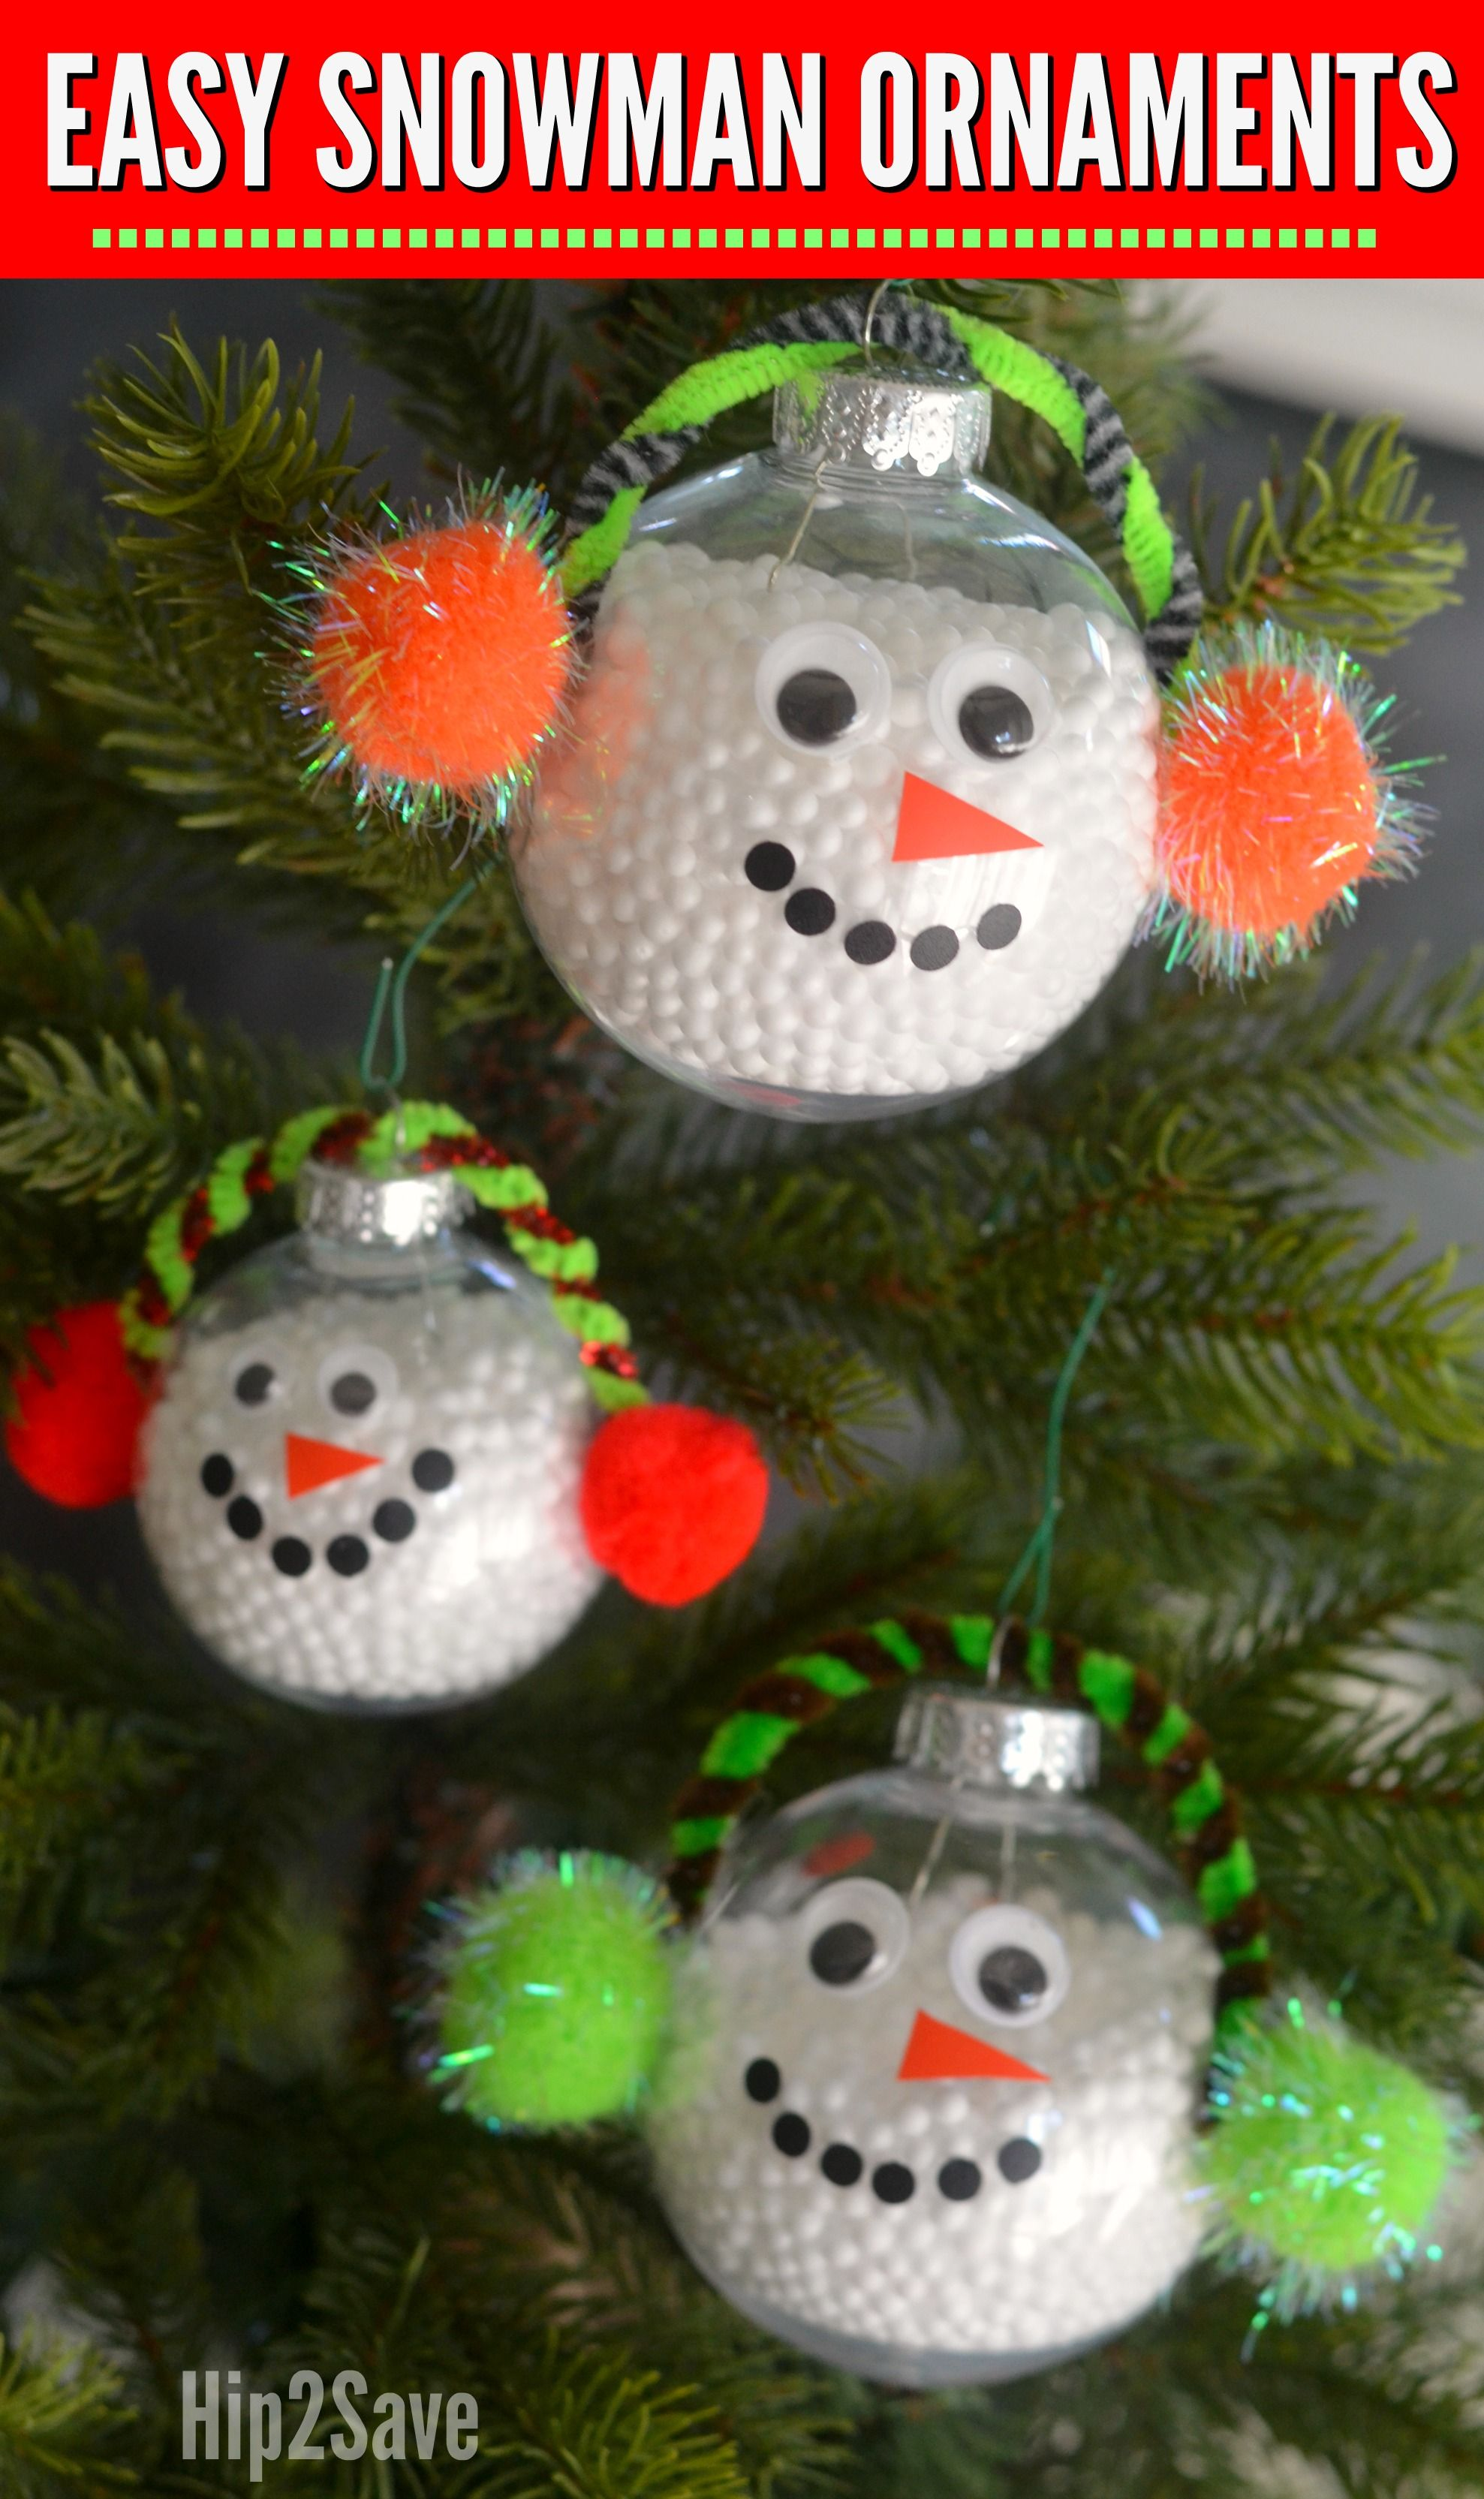 Turn clear ornaments into a cute snowman to hang on the tree